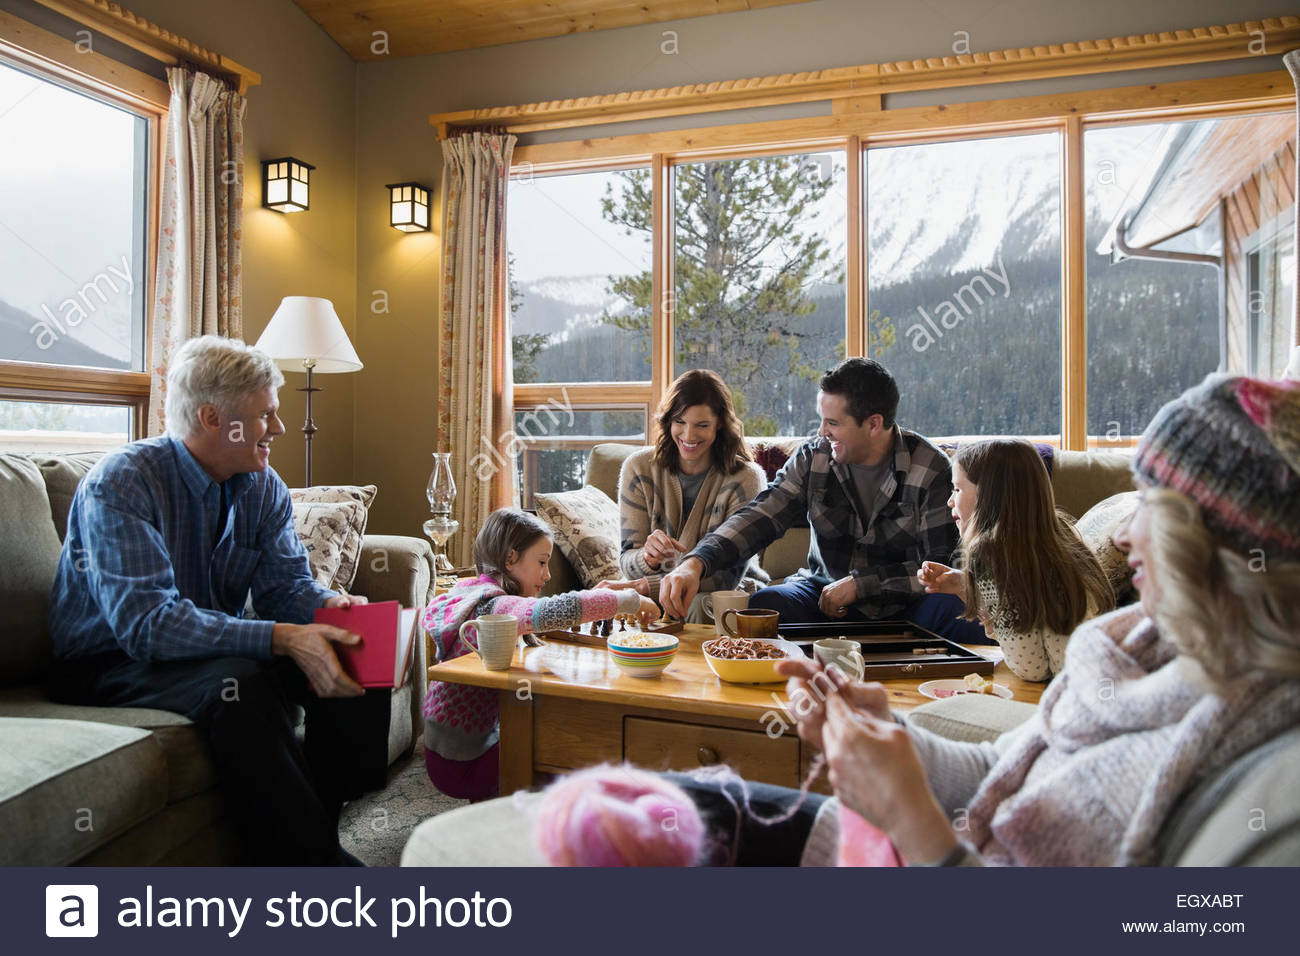 Multi-generation family relaxing in living room Photo Stock